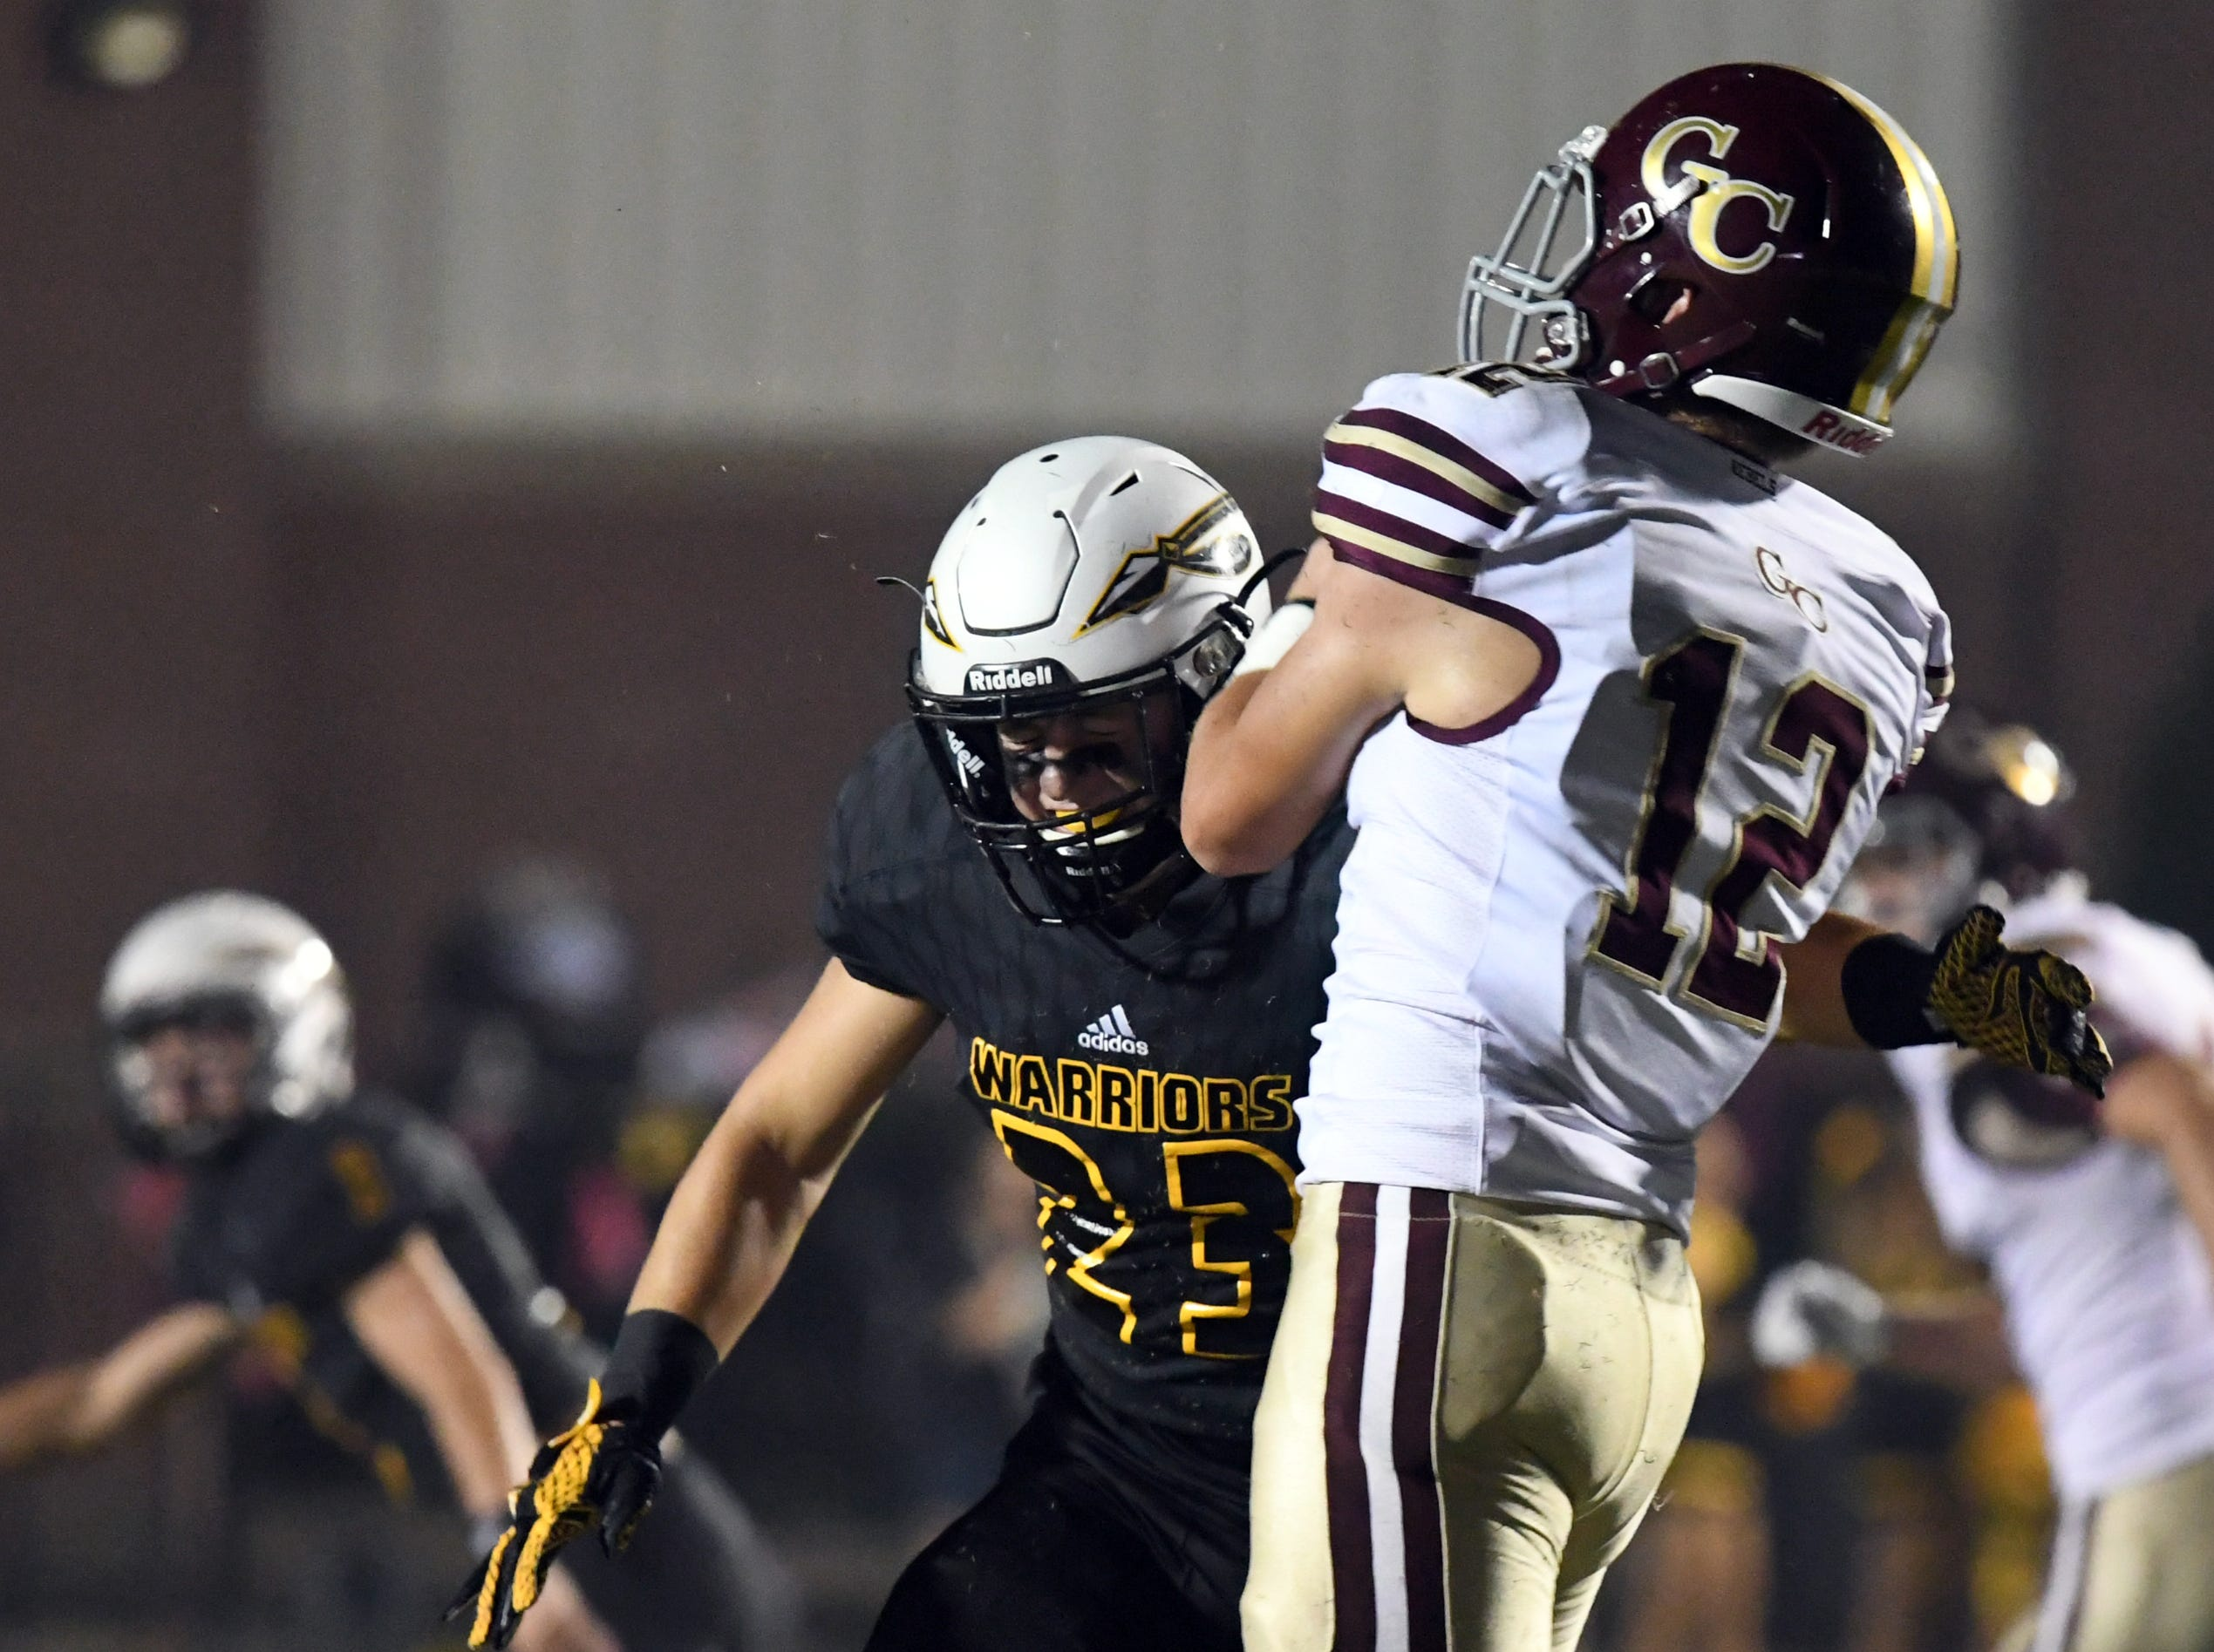 Oak Grove's Kade Shannon makes a tackle in a game against George County in Hattiesburg on Friday, September 21, 2018.